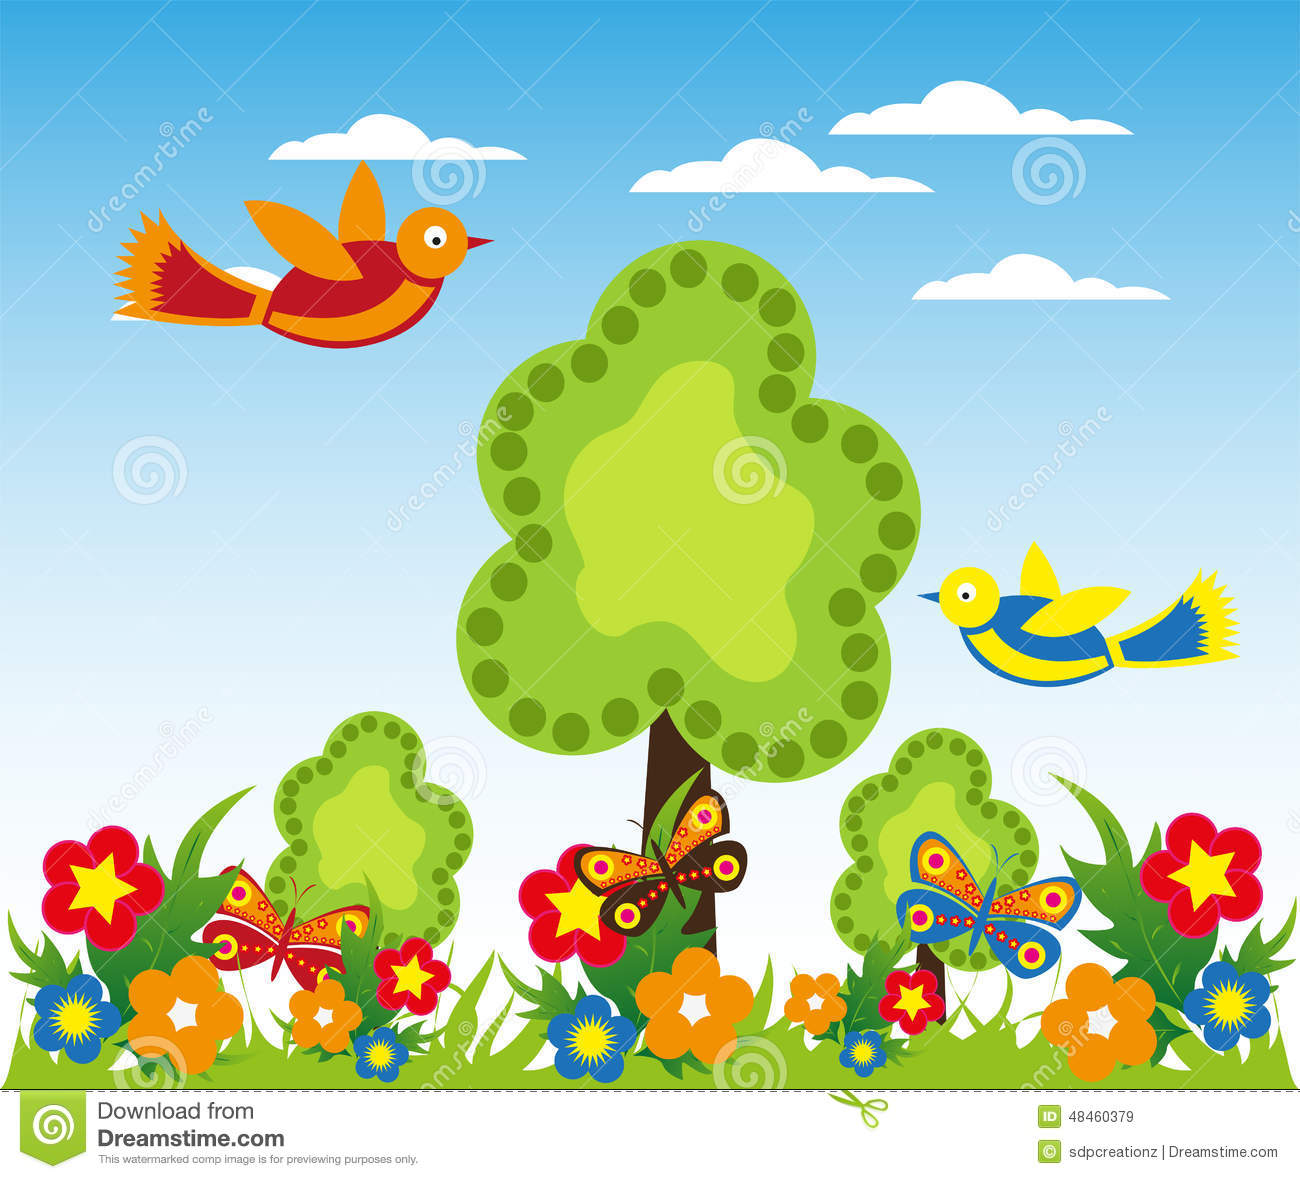 flower garden with butterflies background stock illustration, Garten ideen